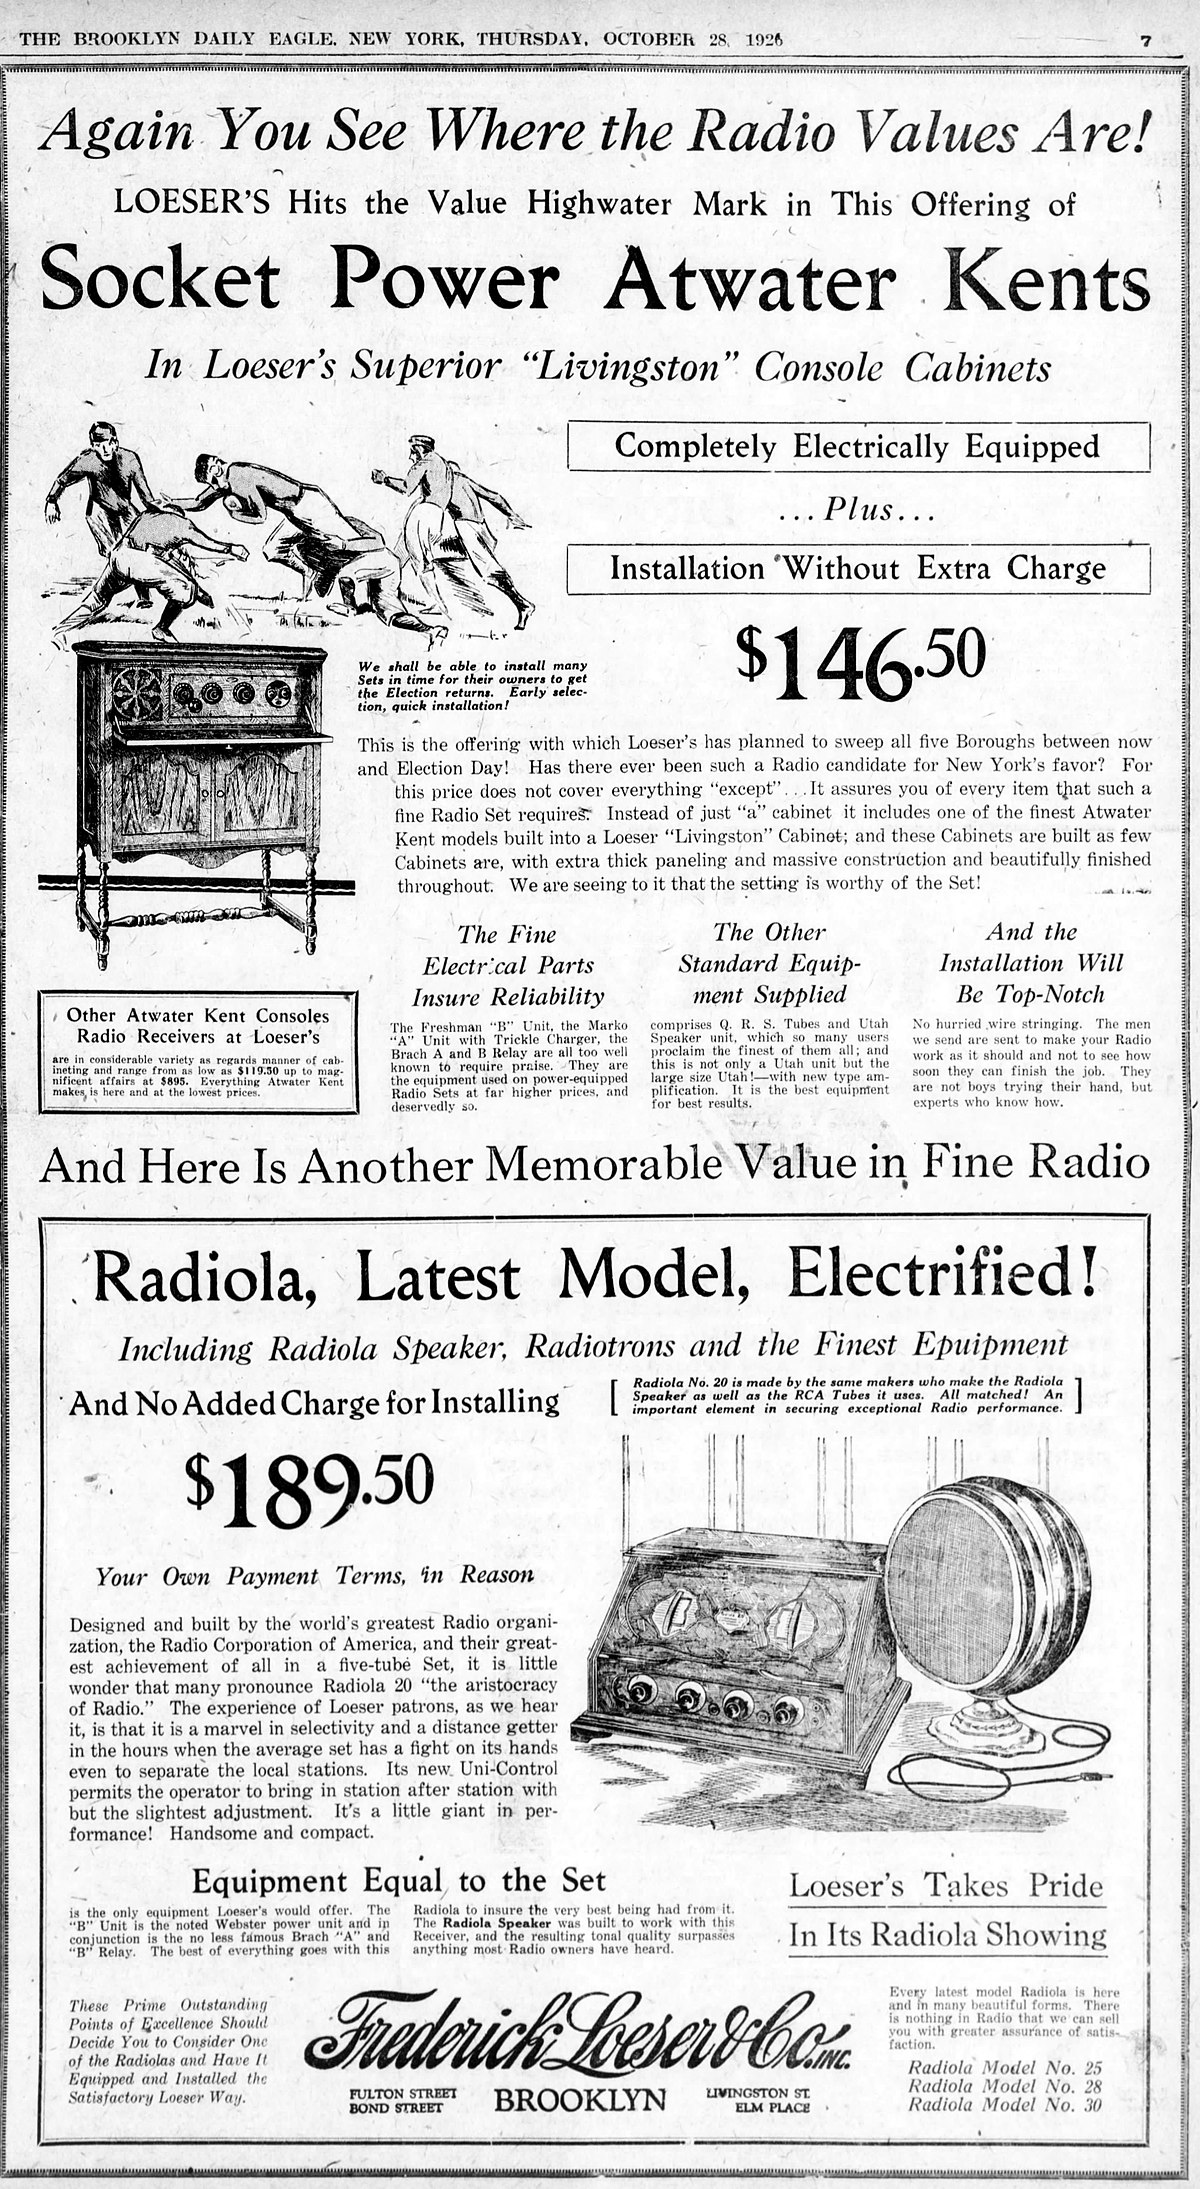 File Vintage Advertising For Atwater Kent And Rca Radiola Radios